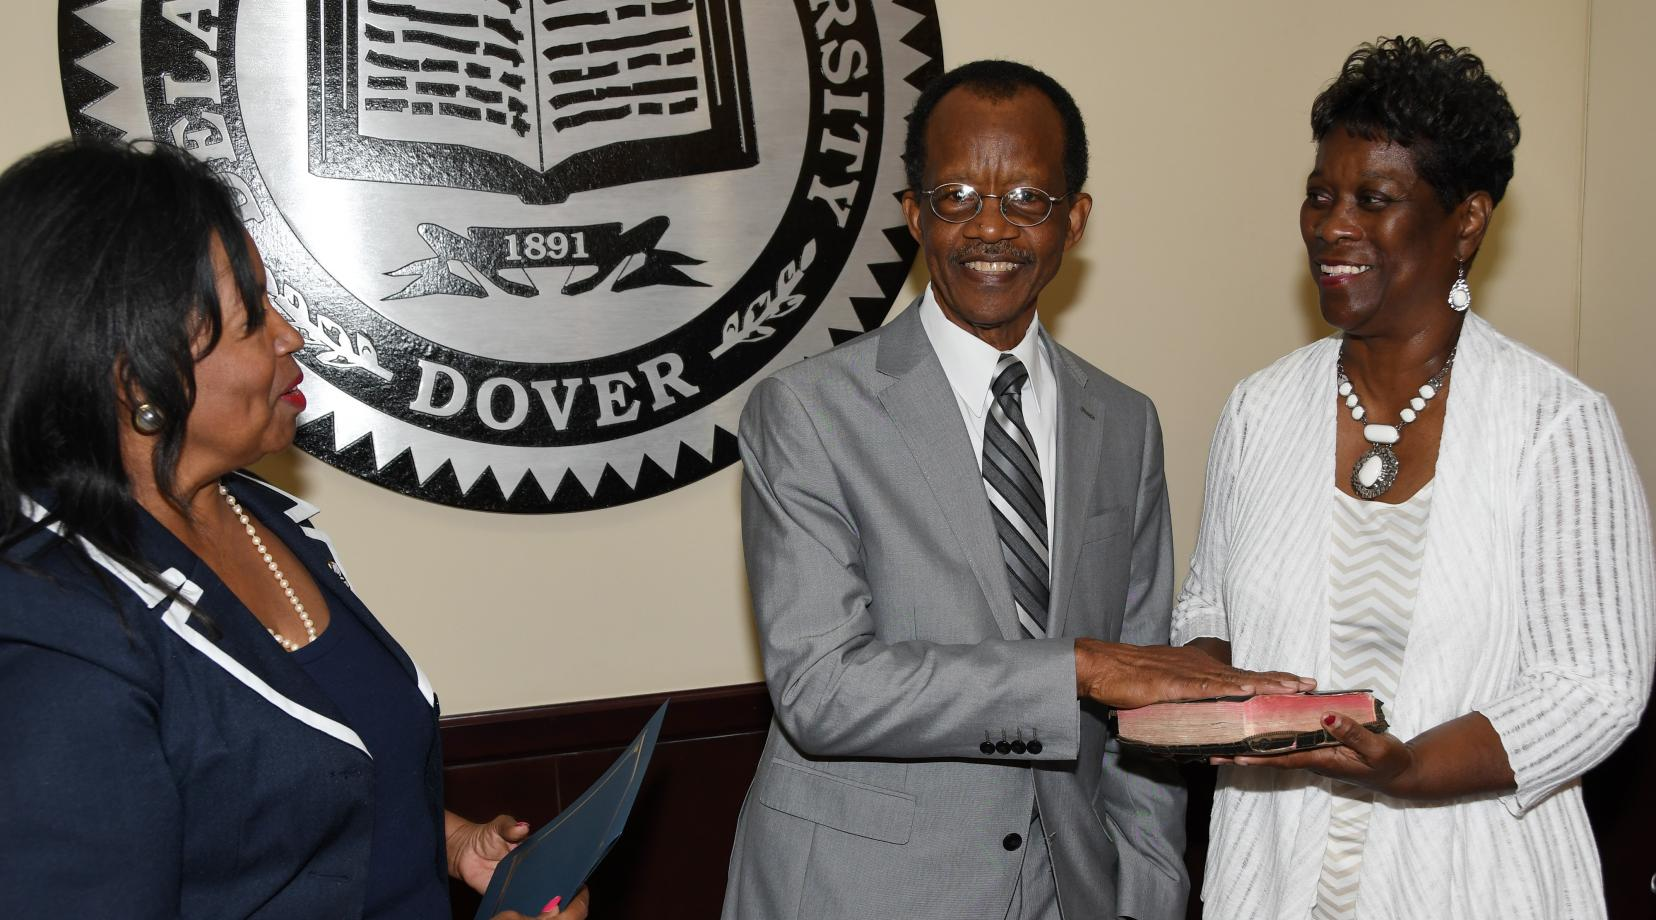 <p>Harold Stafford (center) takes the Board of Trustees oath from Board Interim Chair Devona Williams (l) while his wife Velvia looks on.</p>